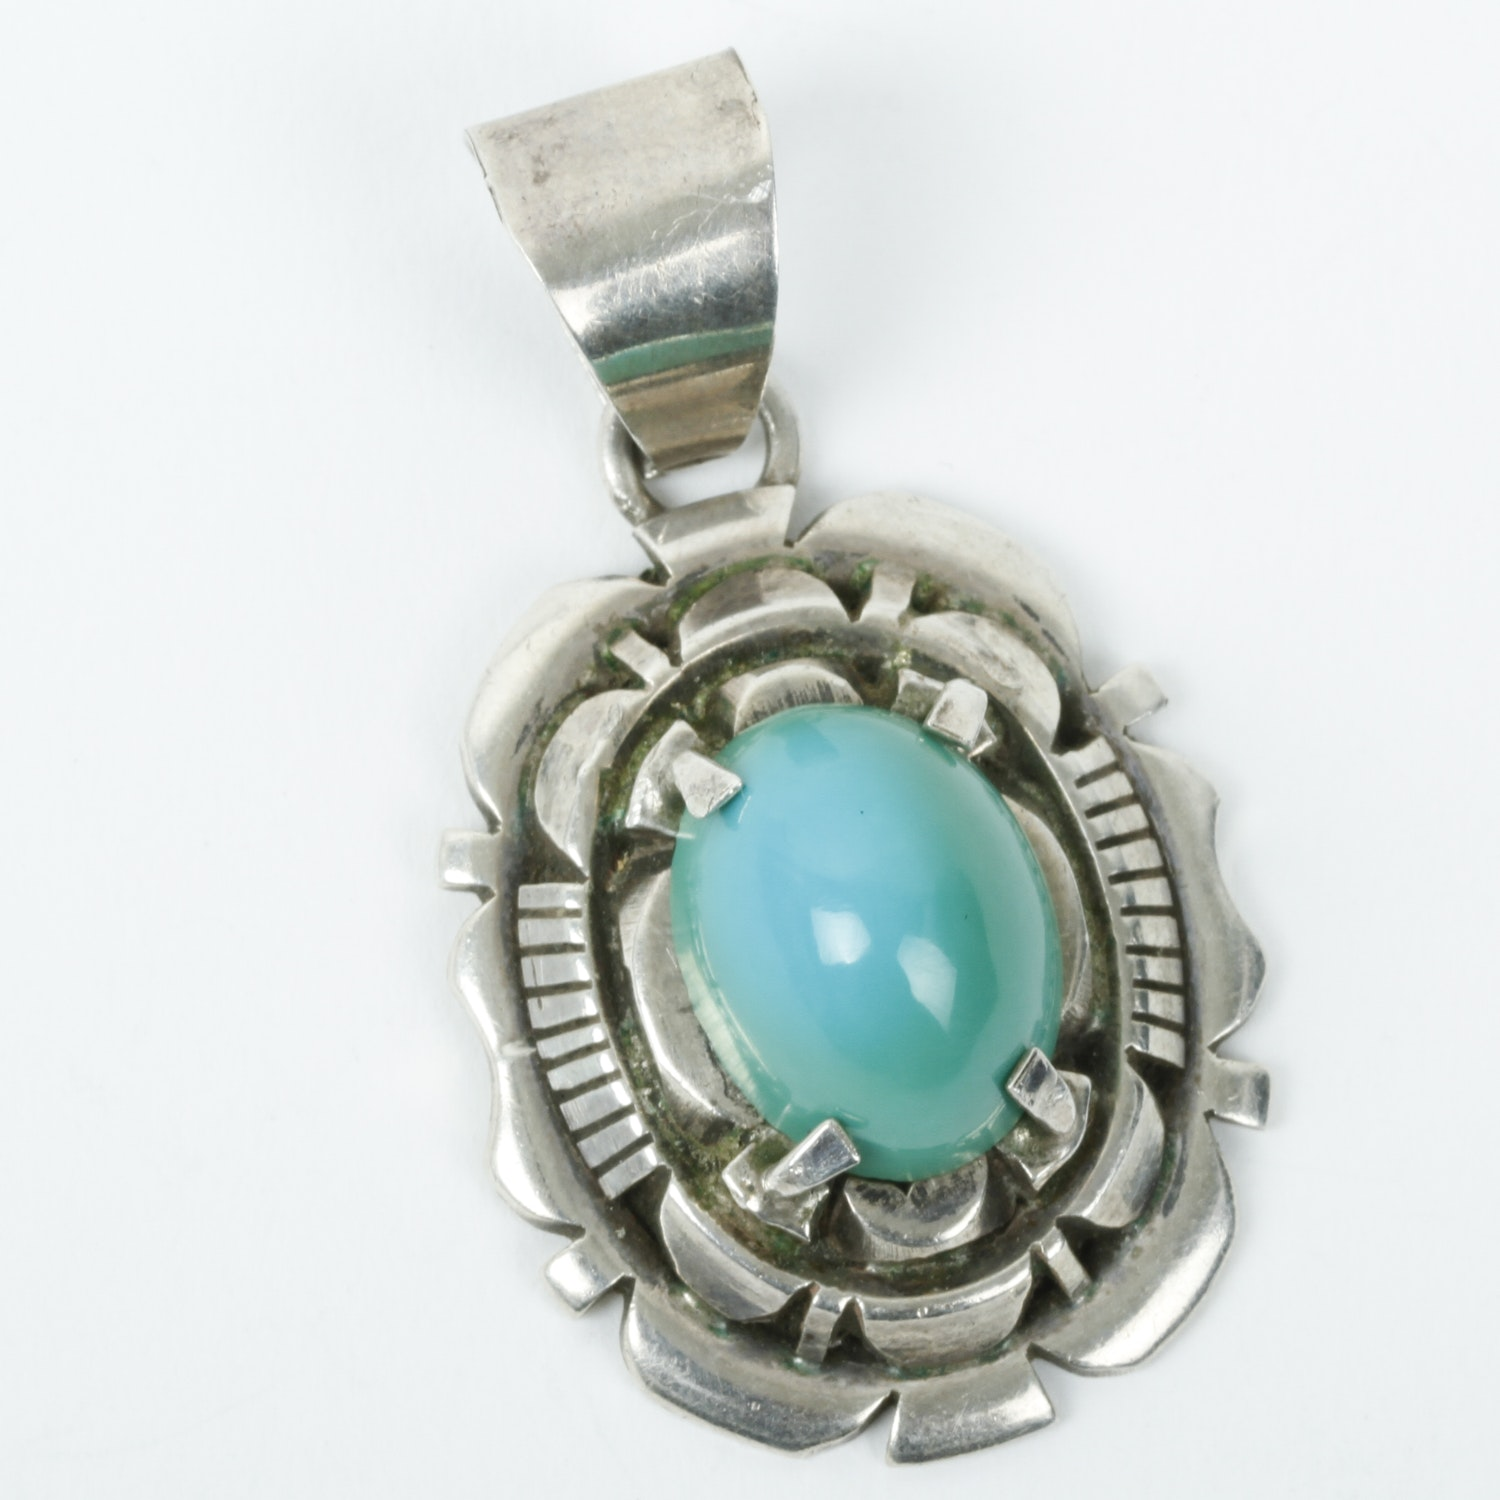 Robert Kelly Navajo Sterling Silver and Turquoise Pendant